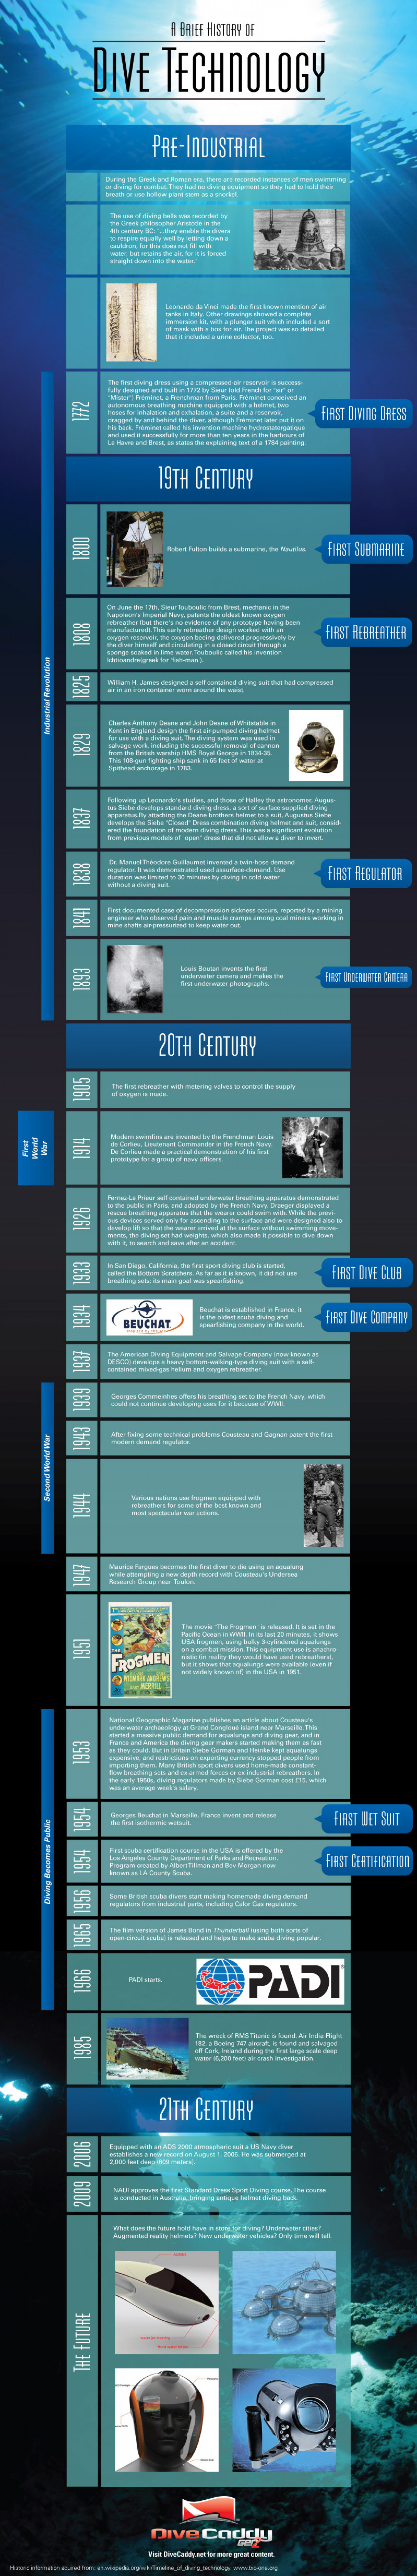 A Brief History of Dive Technology Infographic